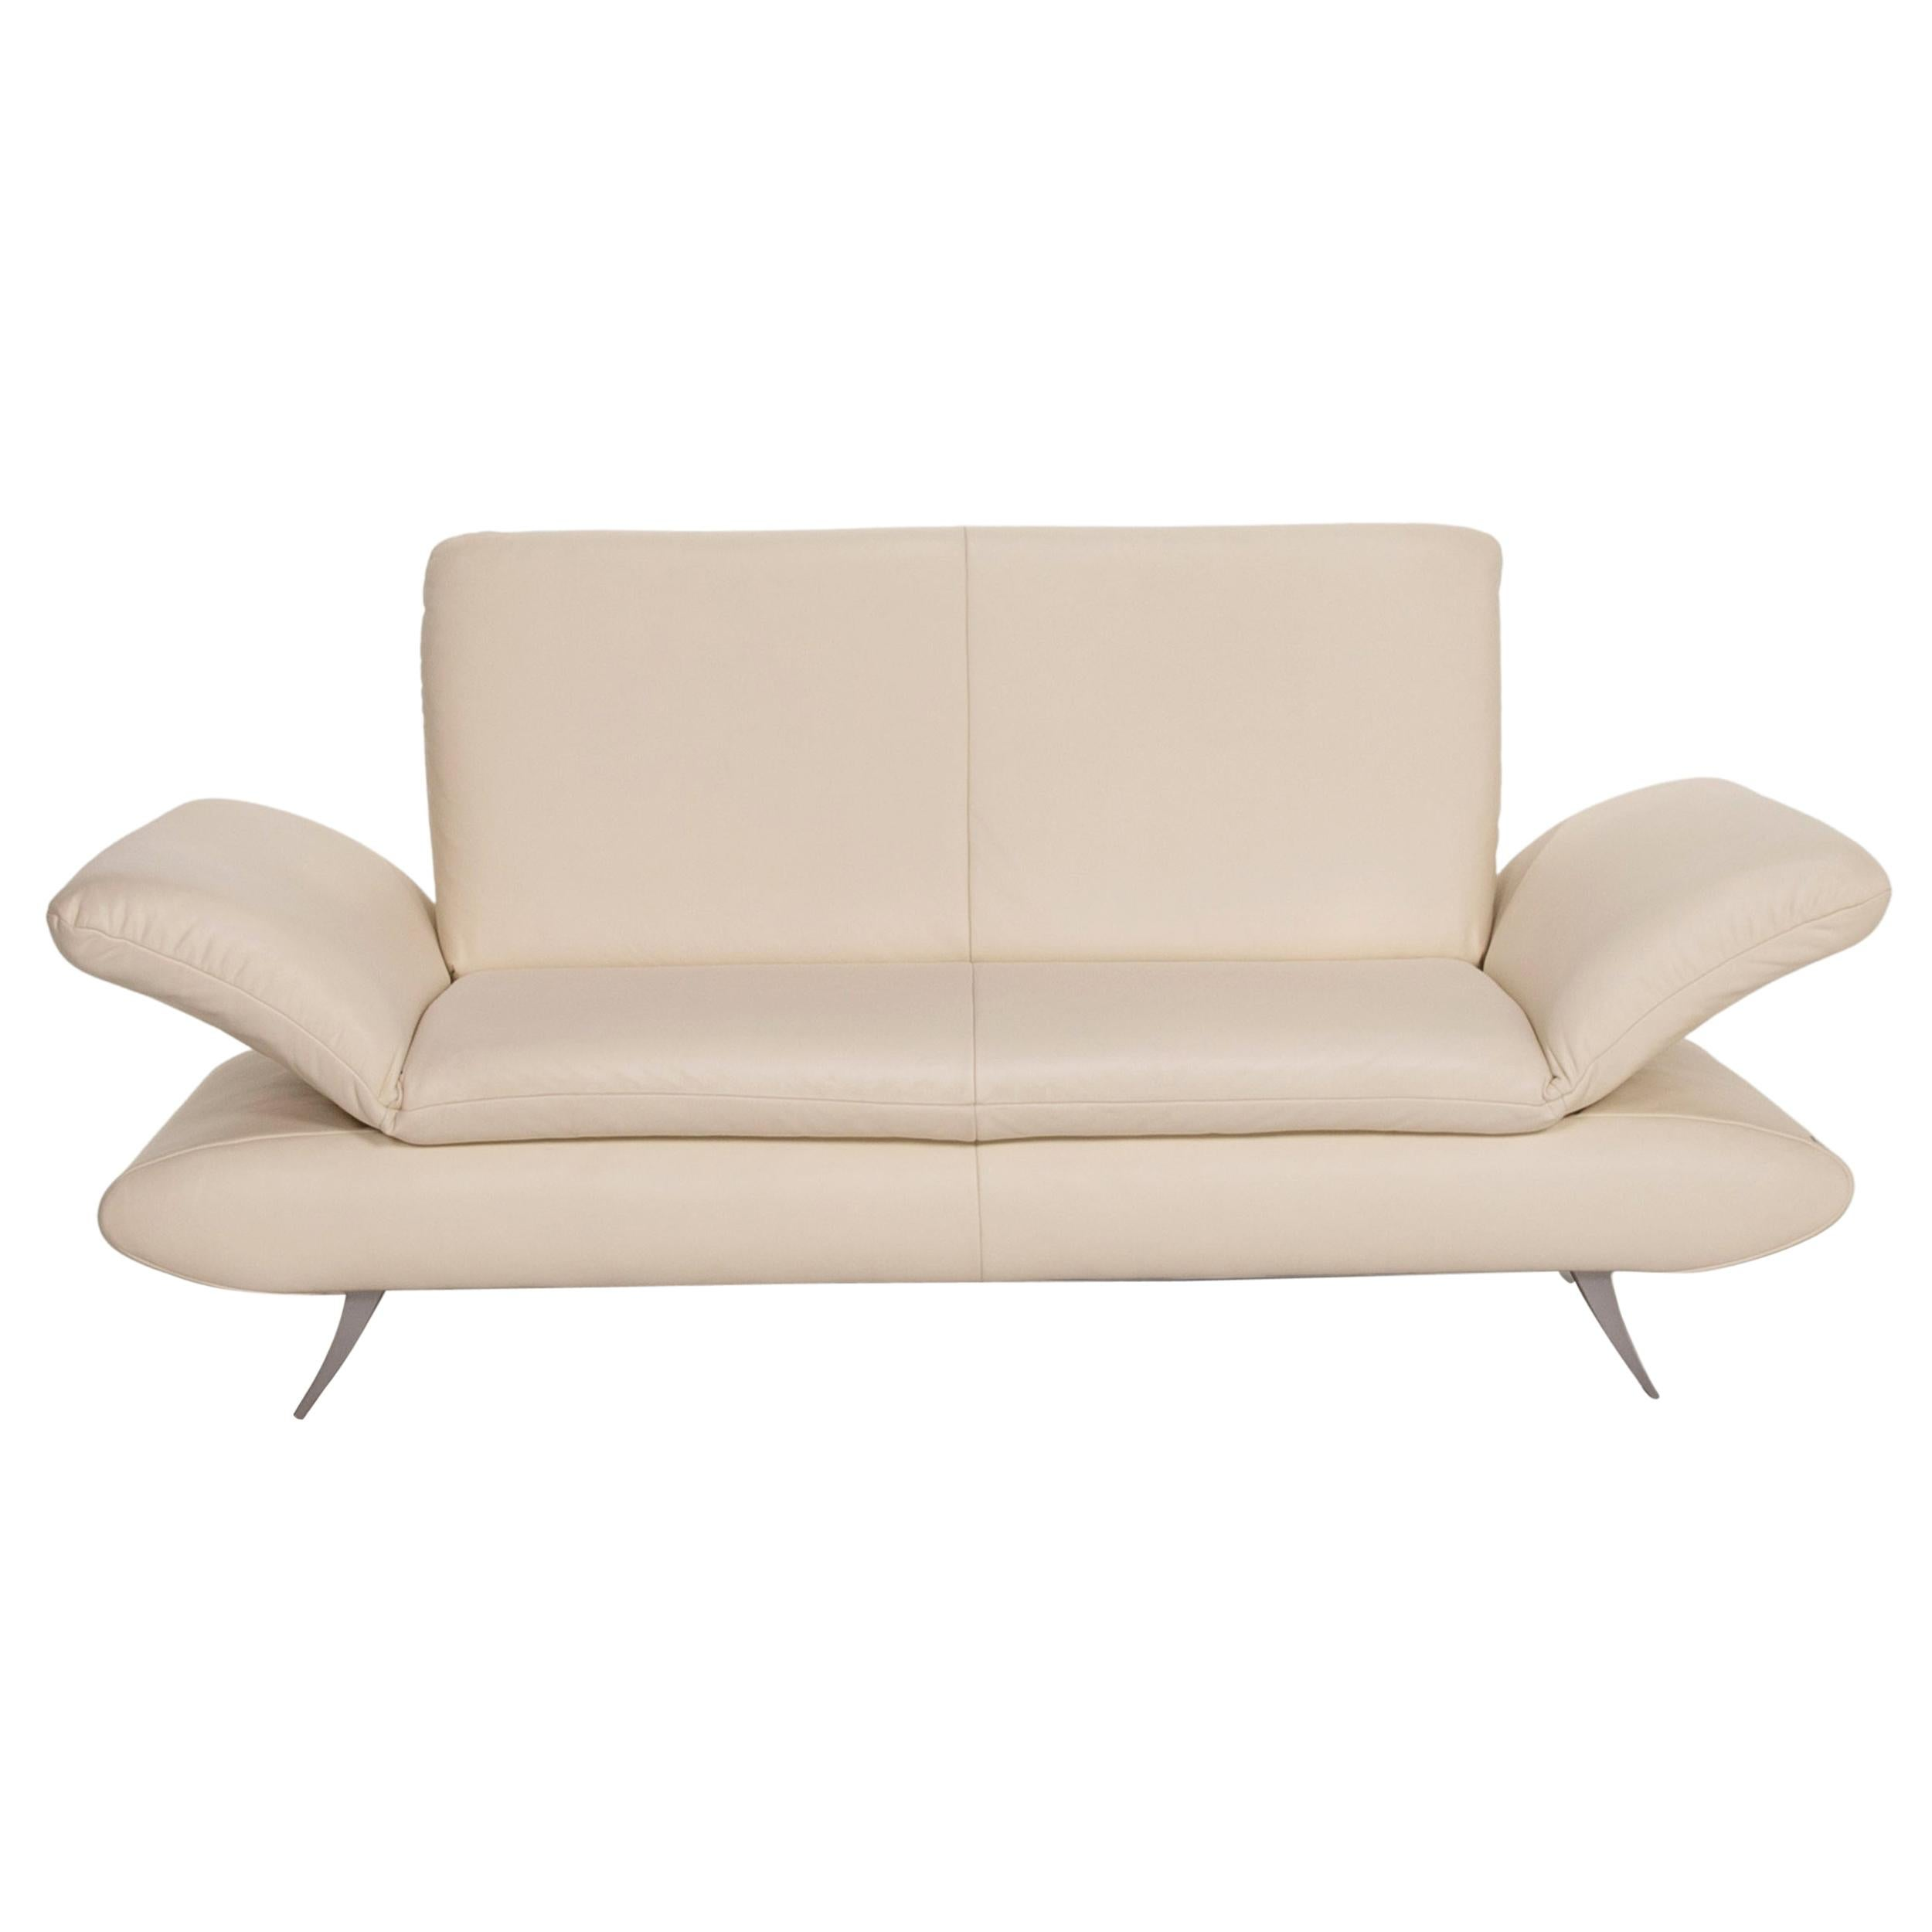 Koinor Rossini Leather Sofa Cream Two-Seater Function Couch